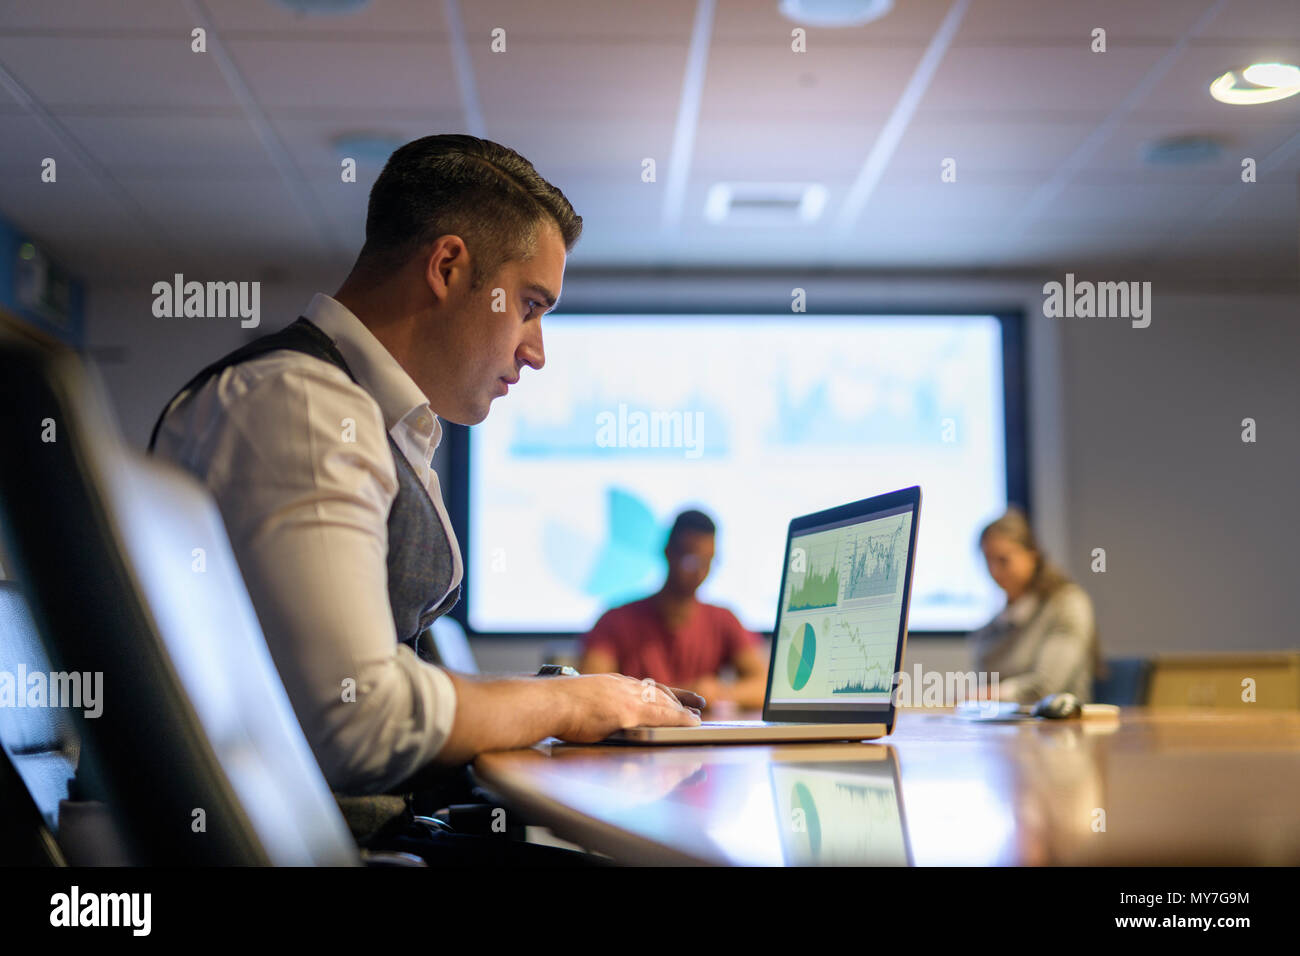 Businessman with laptop in business meeting - Stock Image